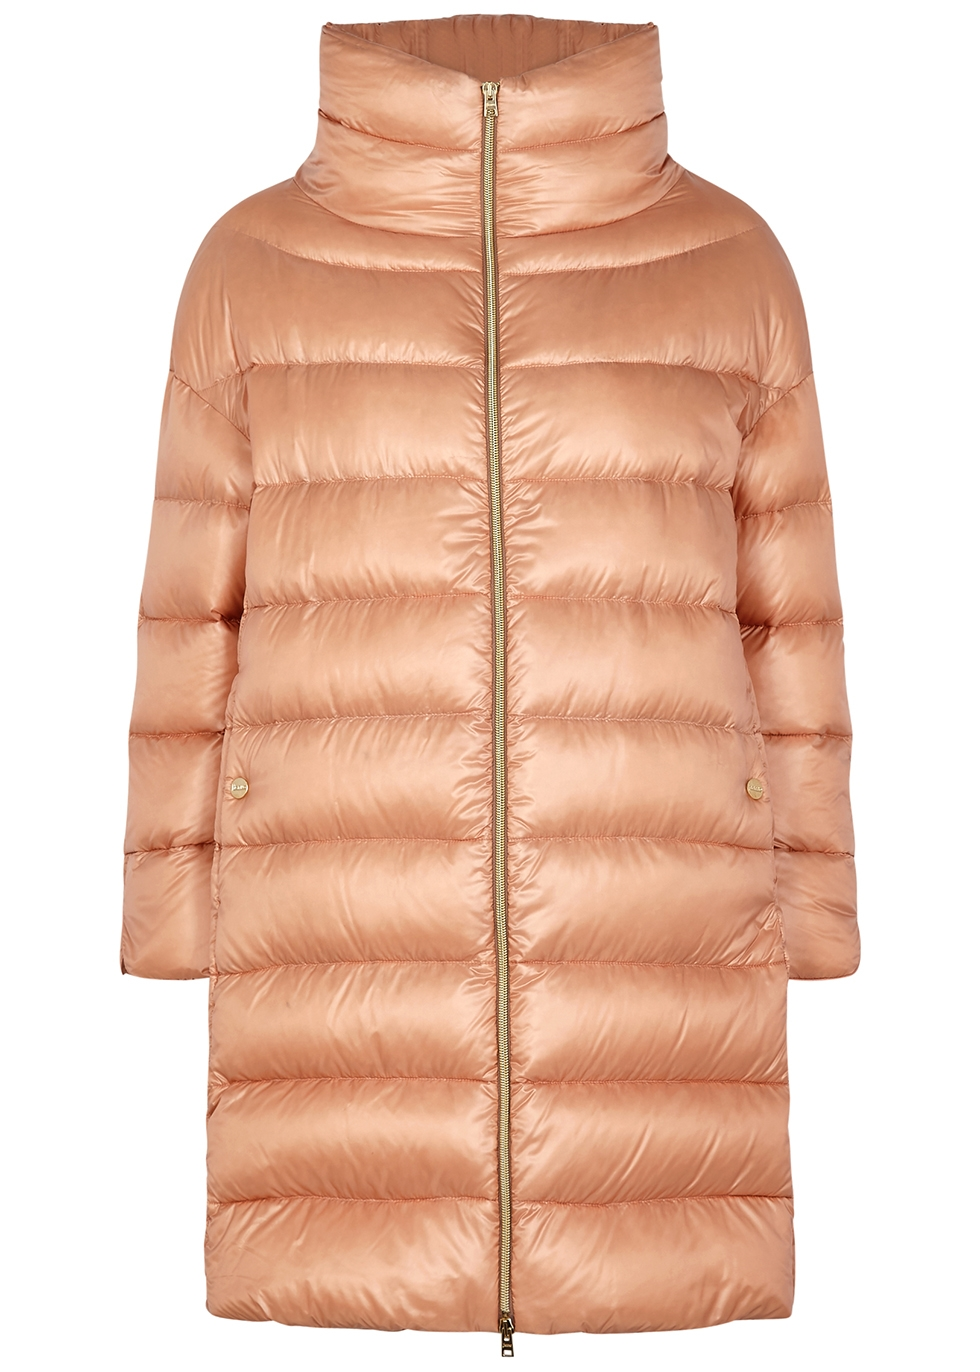 Ultralite blush quilted shell coat